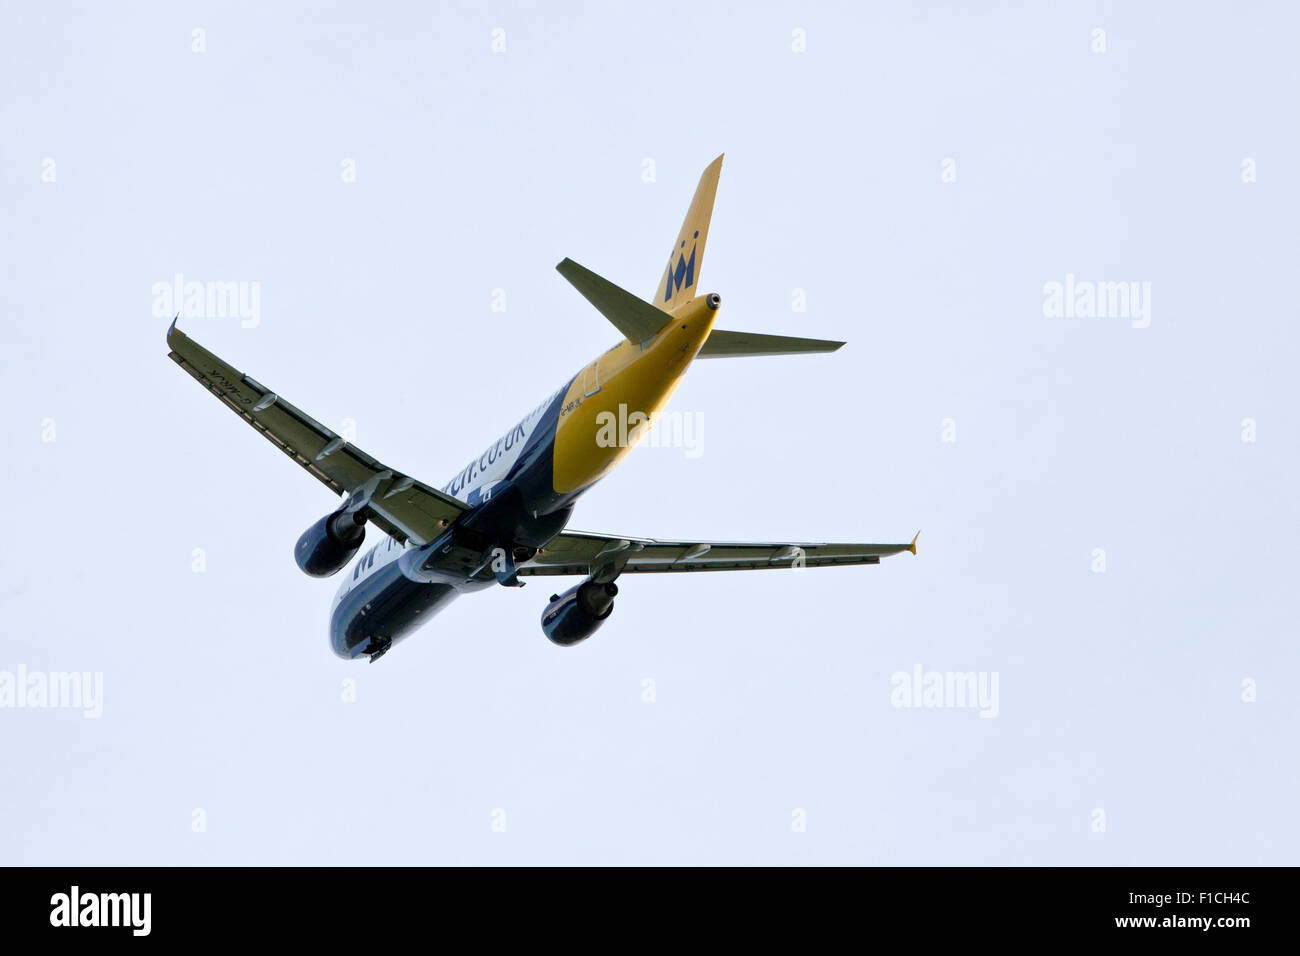 Airbus A320-200 Aeroplane owned by Monarch Airlines - Stock Image